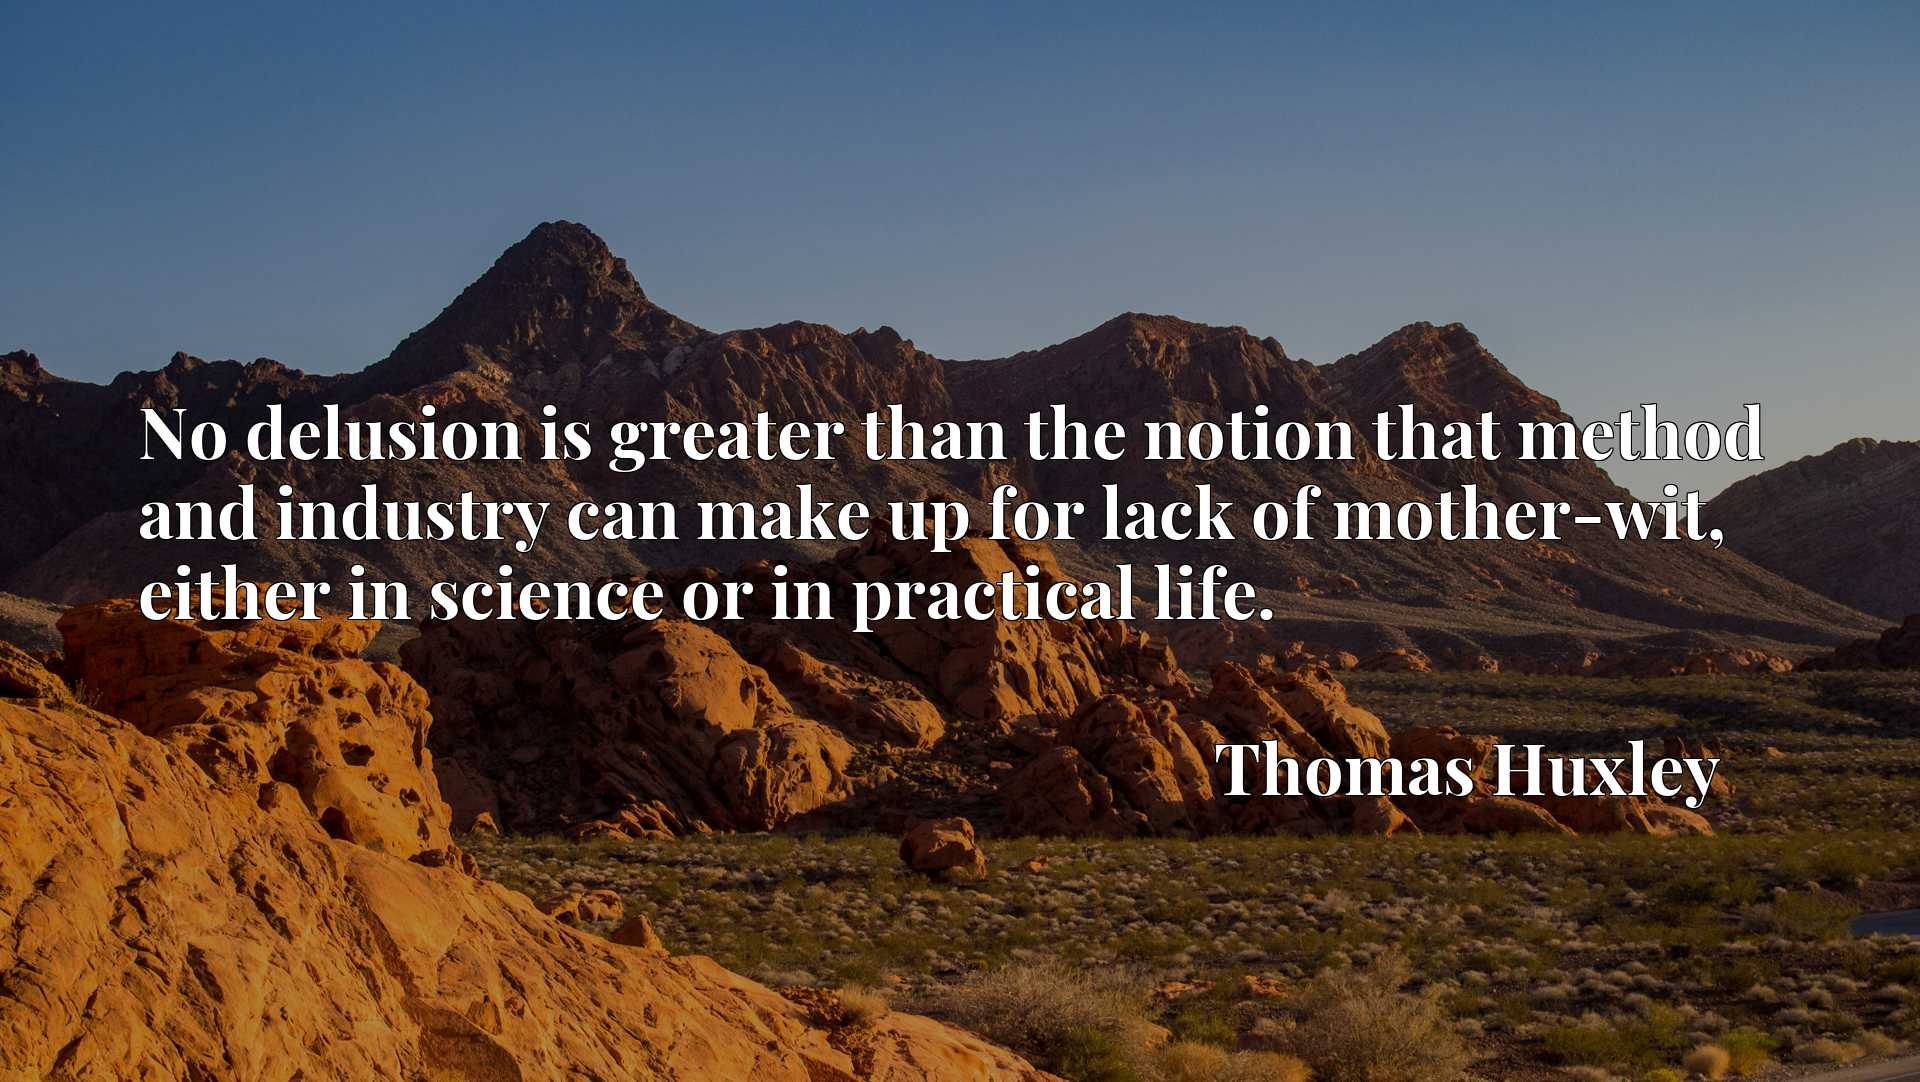 Quote Picture :No delusion is greater than the notion that method and industry can make up for lack of mother-wit, either in science or in practical life.